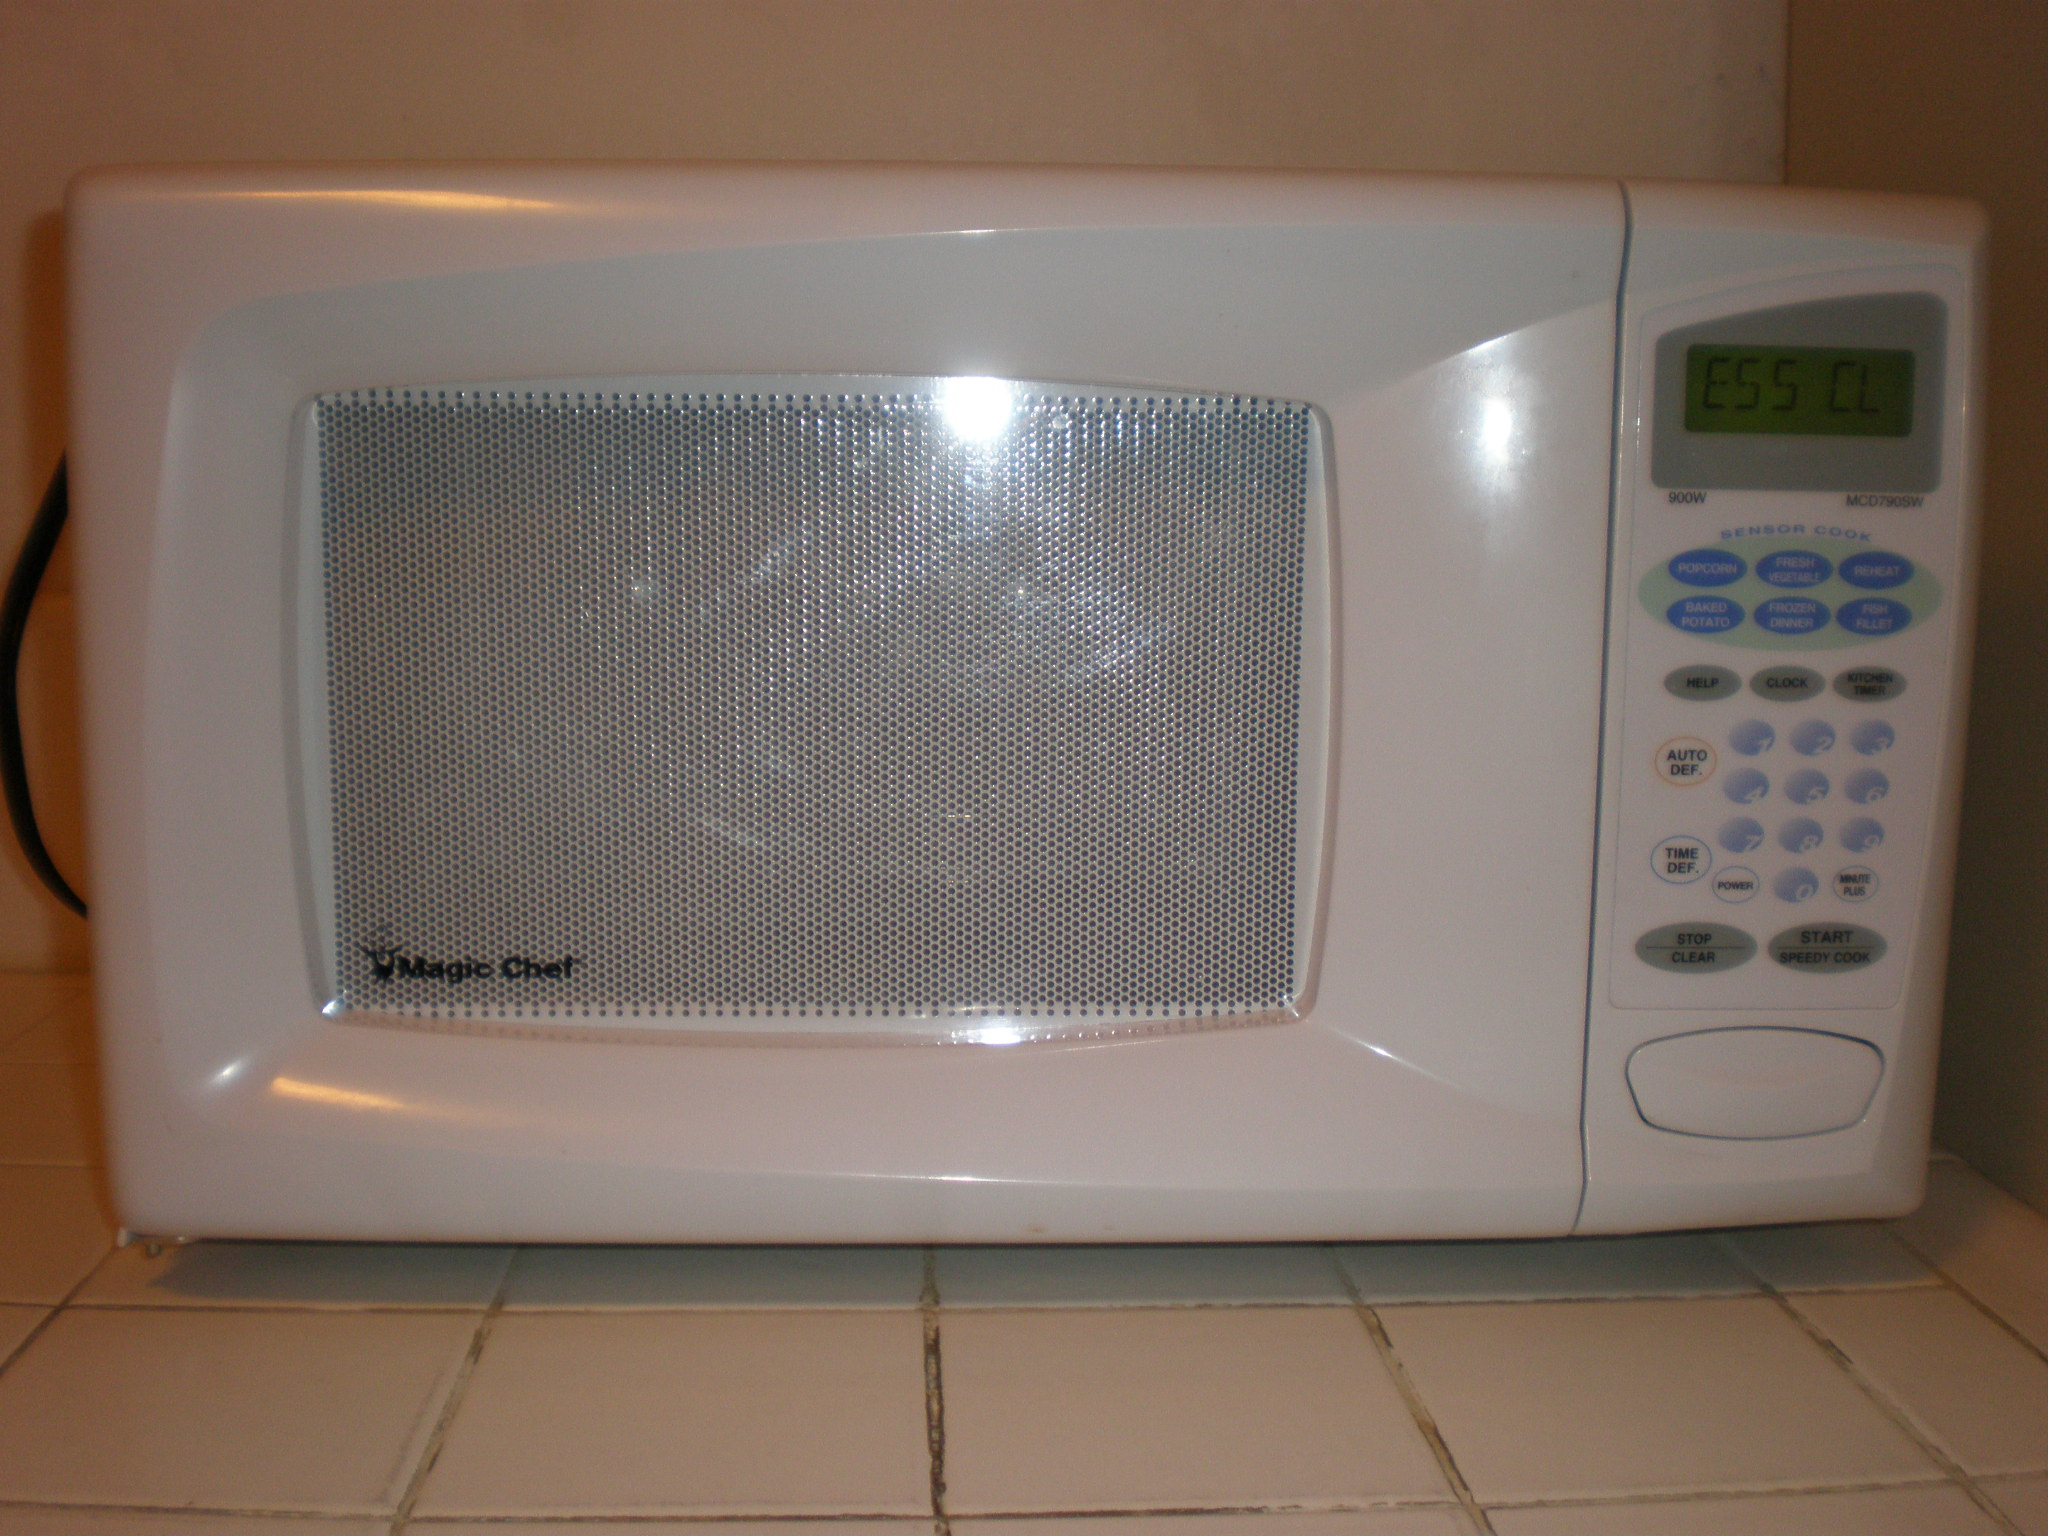 filemagic chef mcd790sw microwave frontjpg - Magic Chef Oven